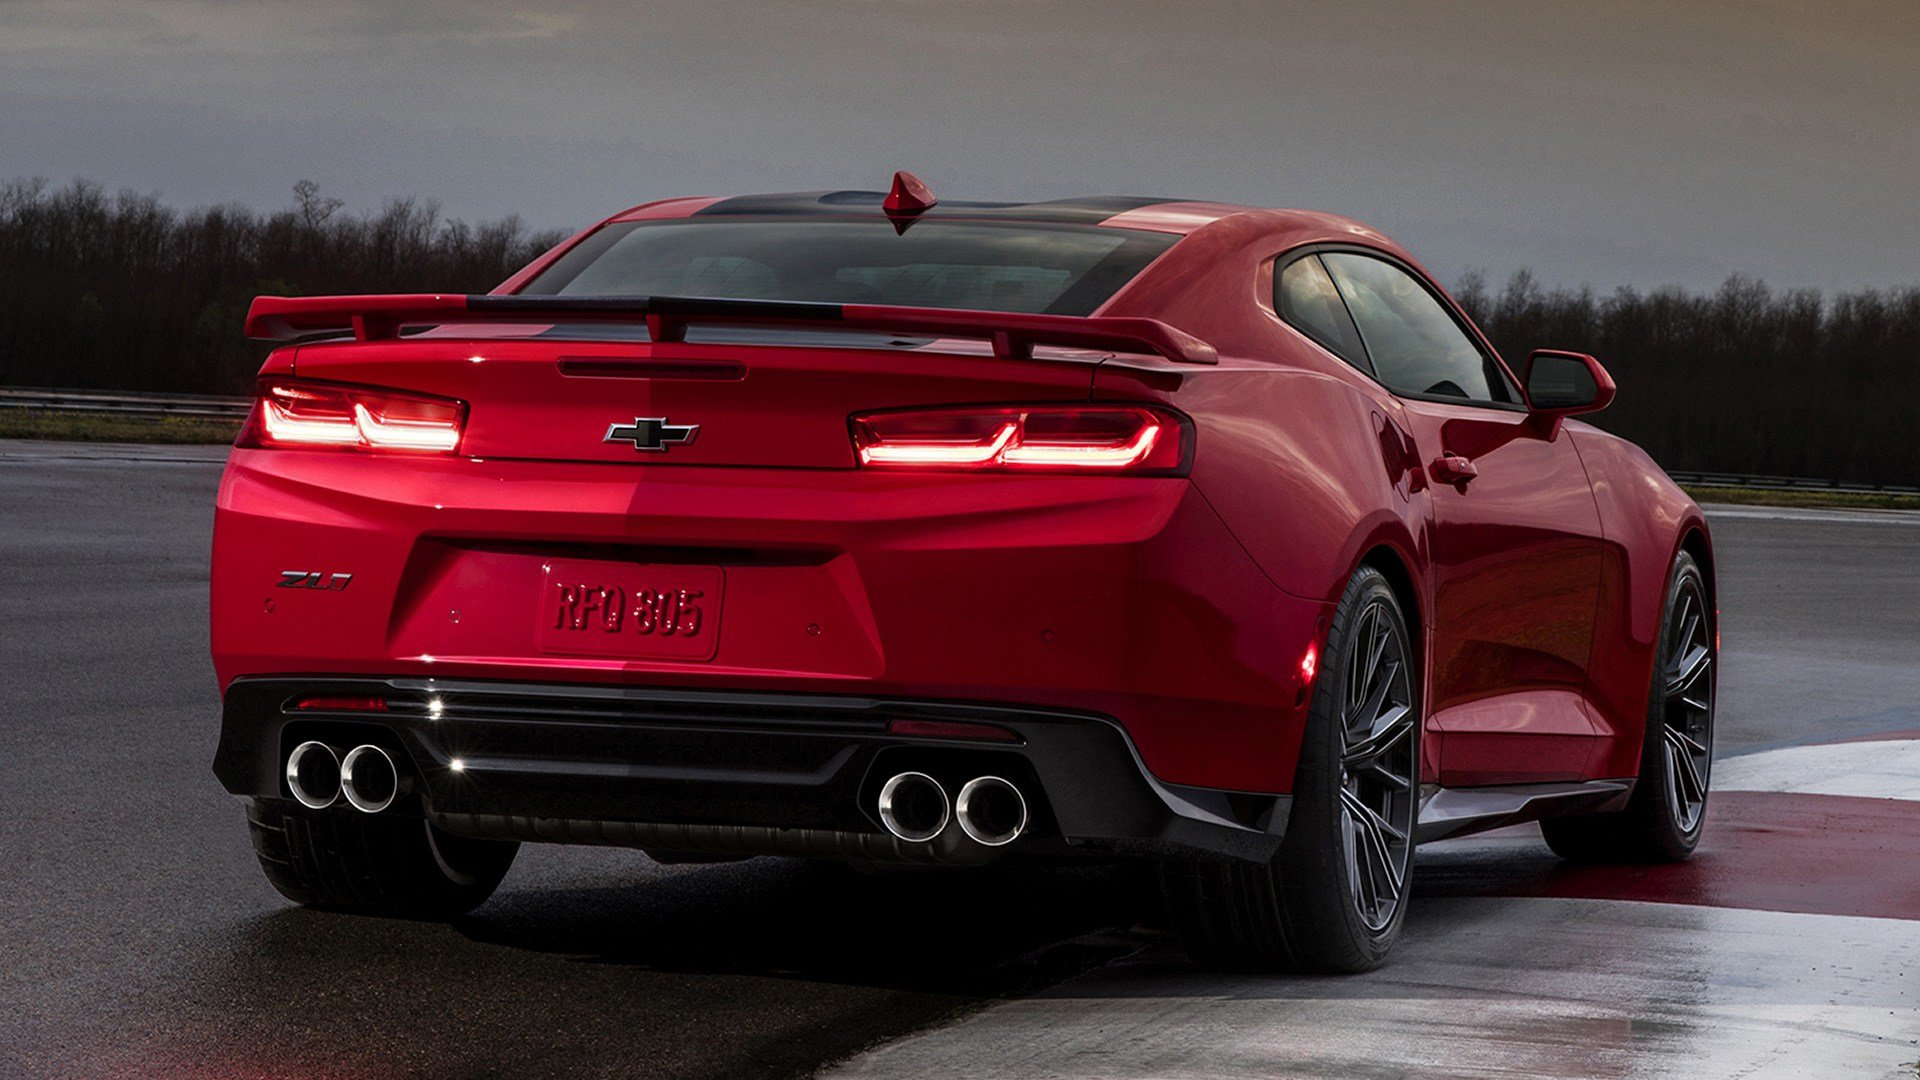 New Chevrolet Camaro Zl1 2017 Wallpapers And Hd Images Car On This Month